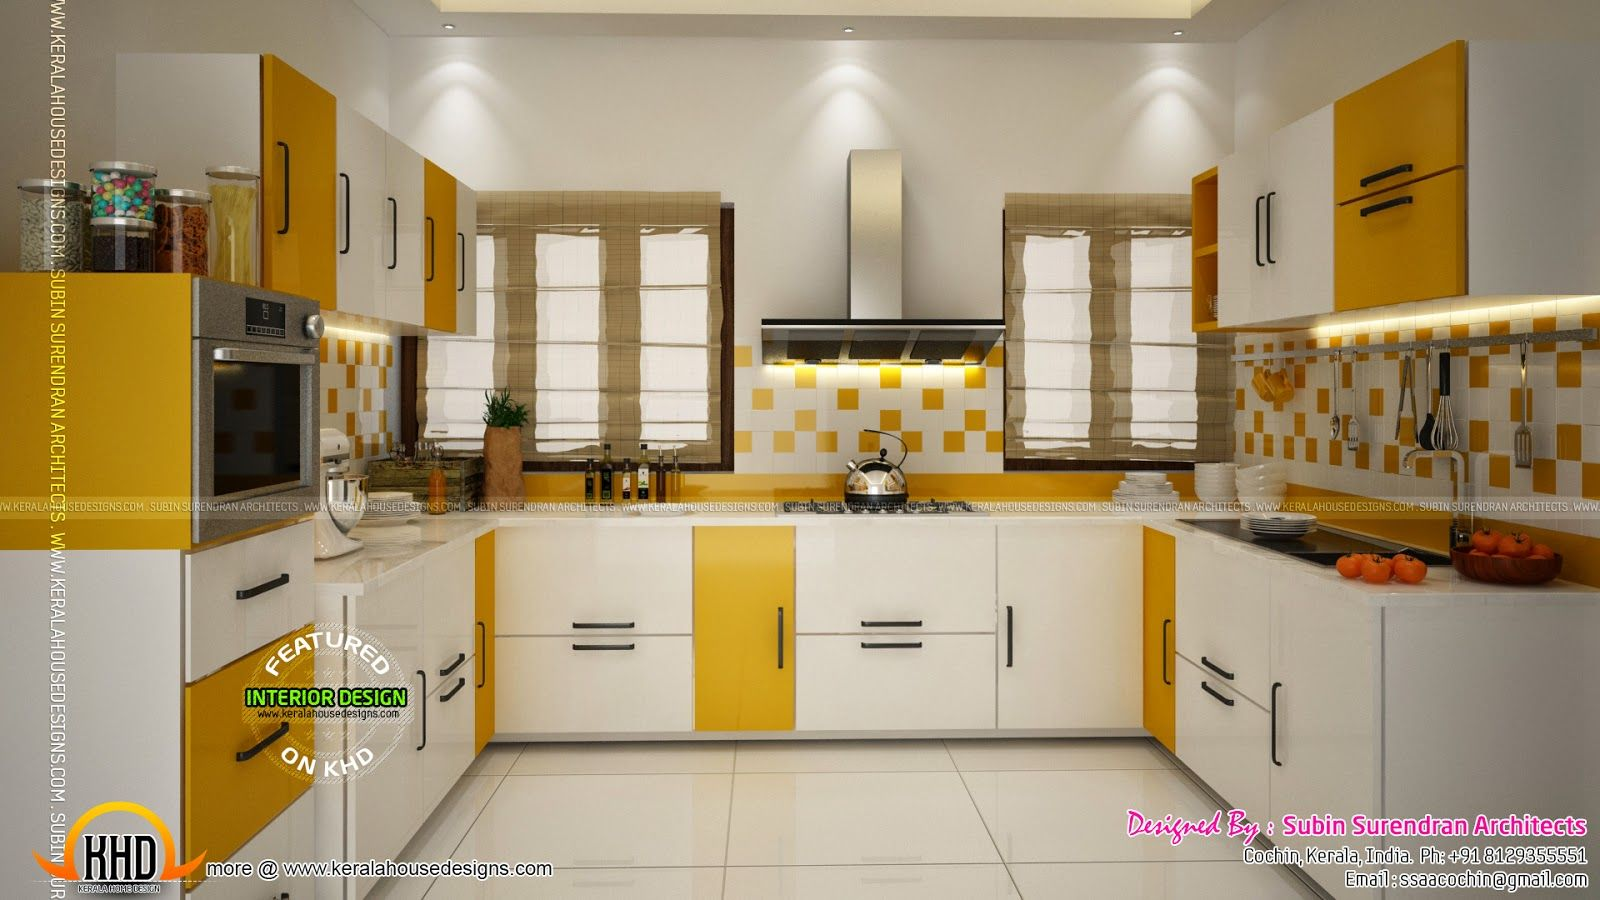 Kerala home design floor plans interior design cochin for Kerala model interior designs